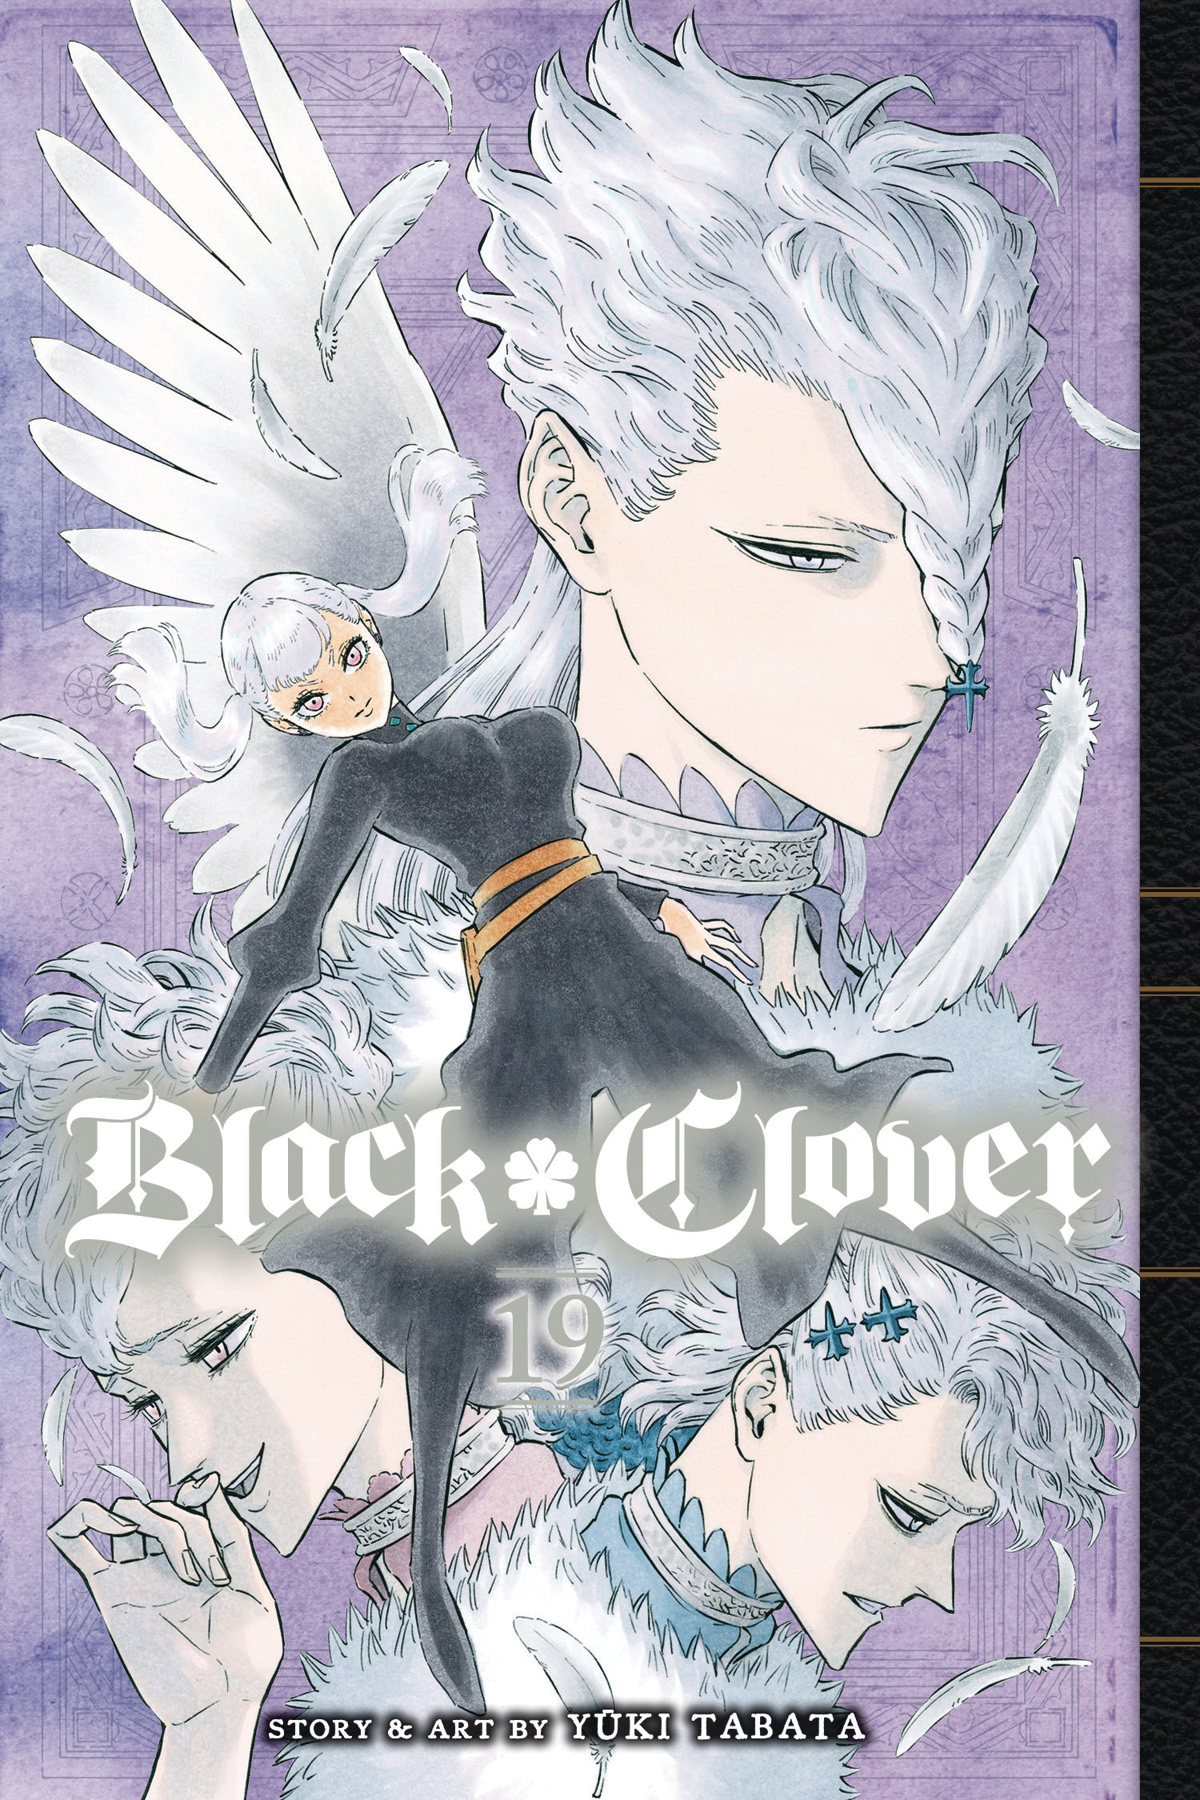 BLACK CLOVER GN VOL 19